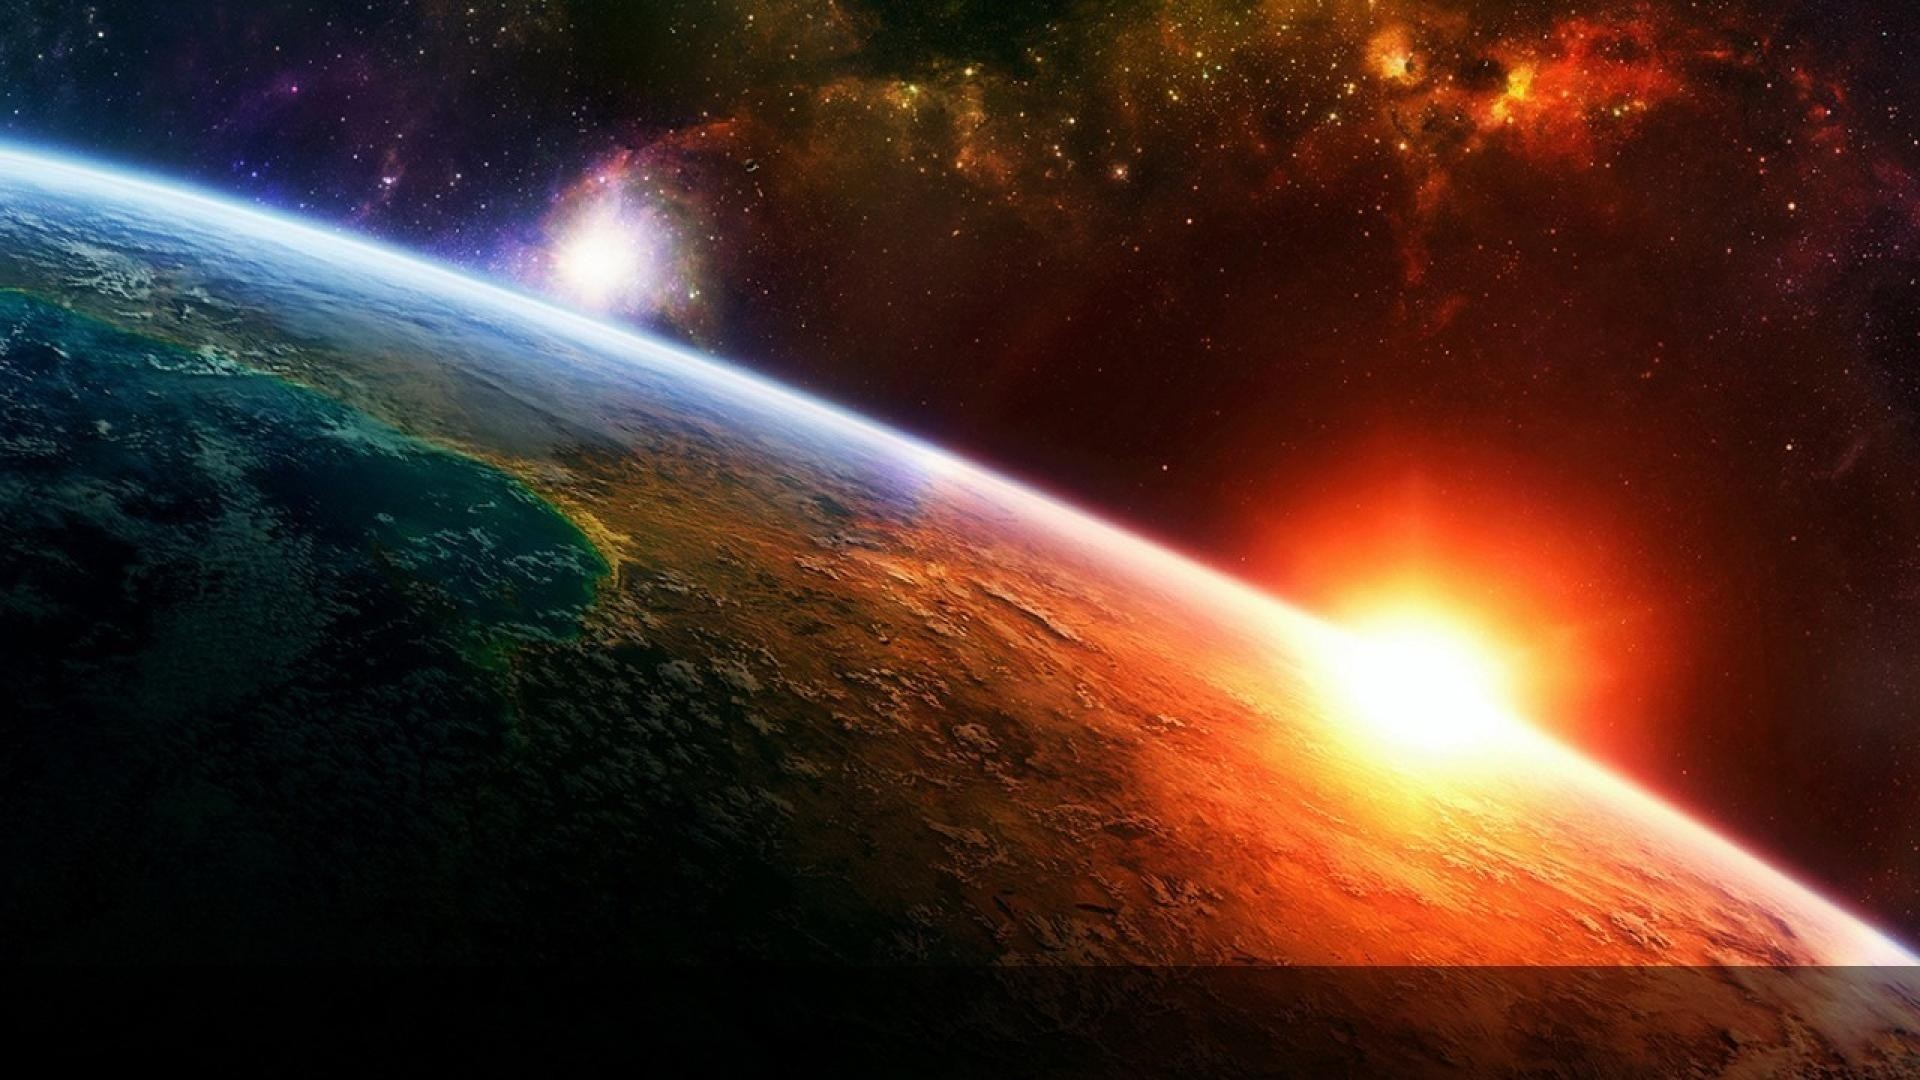 1920x1080 cool wallpapers 1920x1080 with earth on space hd wallpapers for free